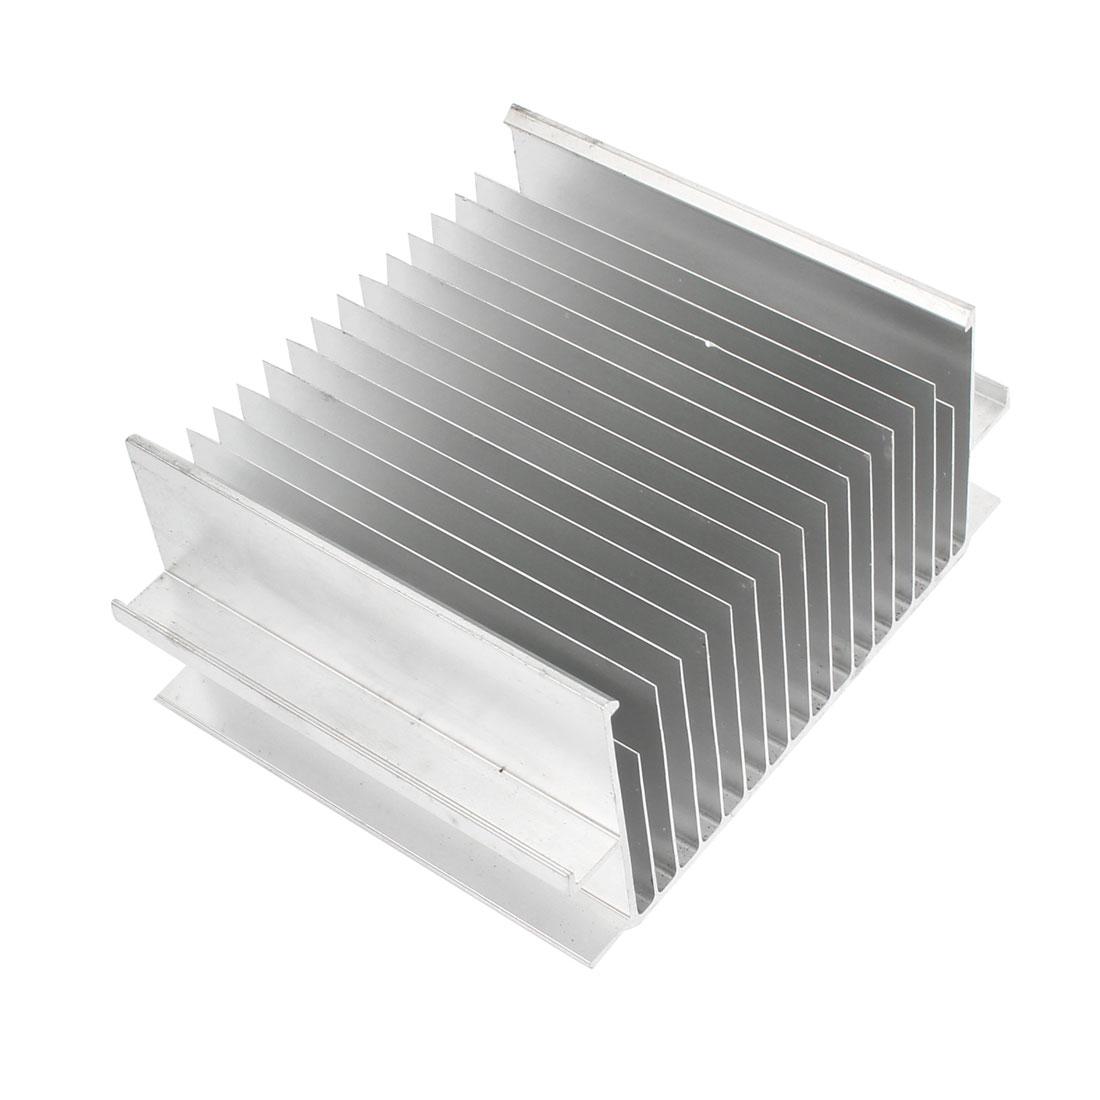 Rectangle Aluminum Heatsink Heat Sink Cooling Cooler Fin 85mmx68mmx41mm Silver Tone for Mosfet IC